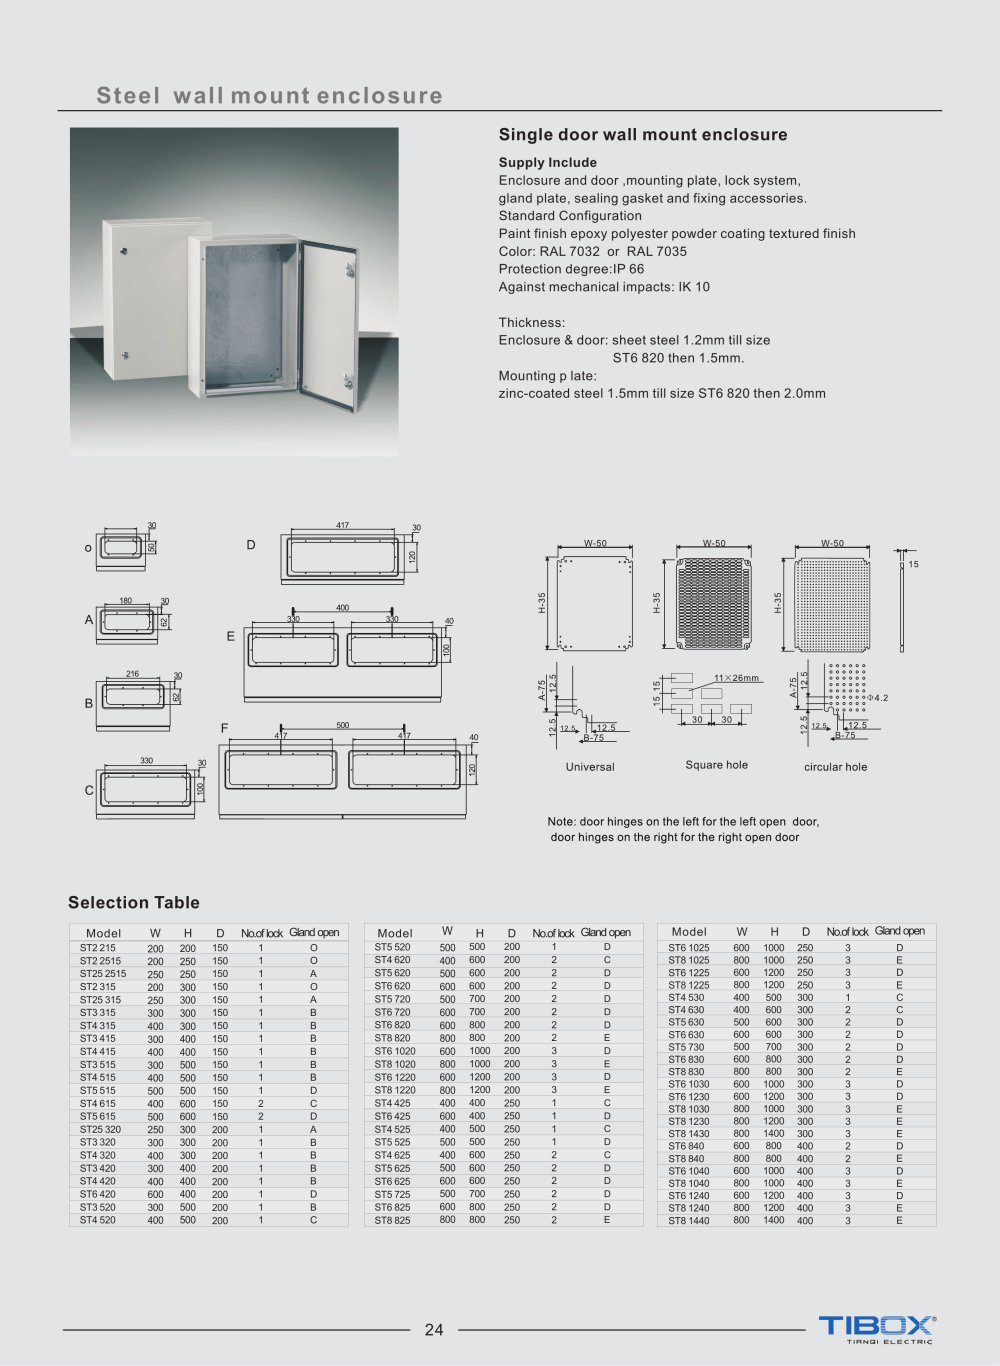 Amazing Standard Electrical Panel Sizes #10: TIBOX-steel Wall Mounting Enclosures-electrical Control Board Panel - 1 / 3  Pages